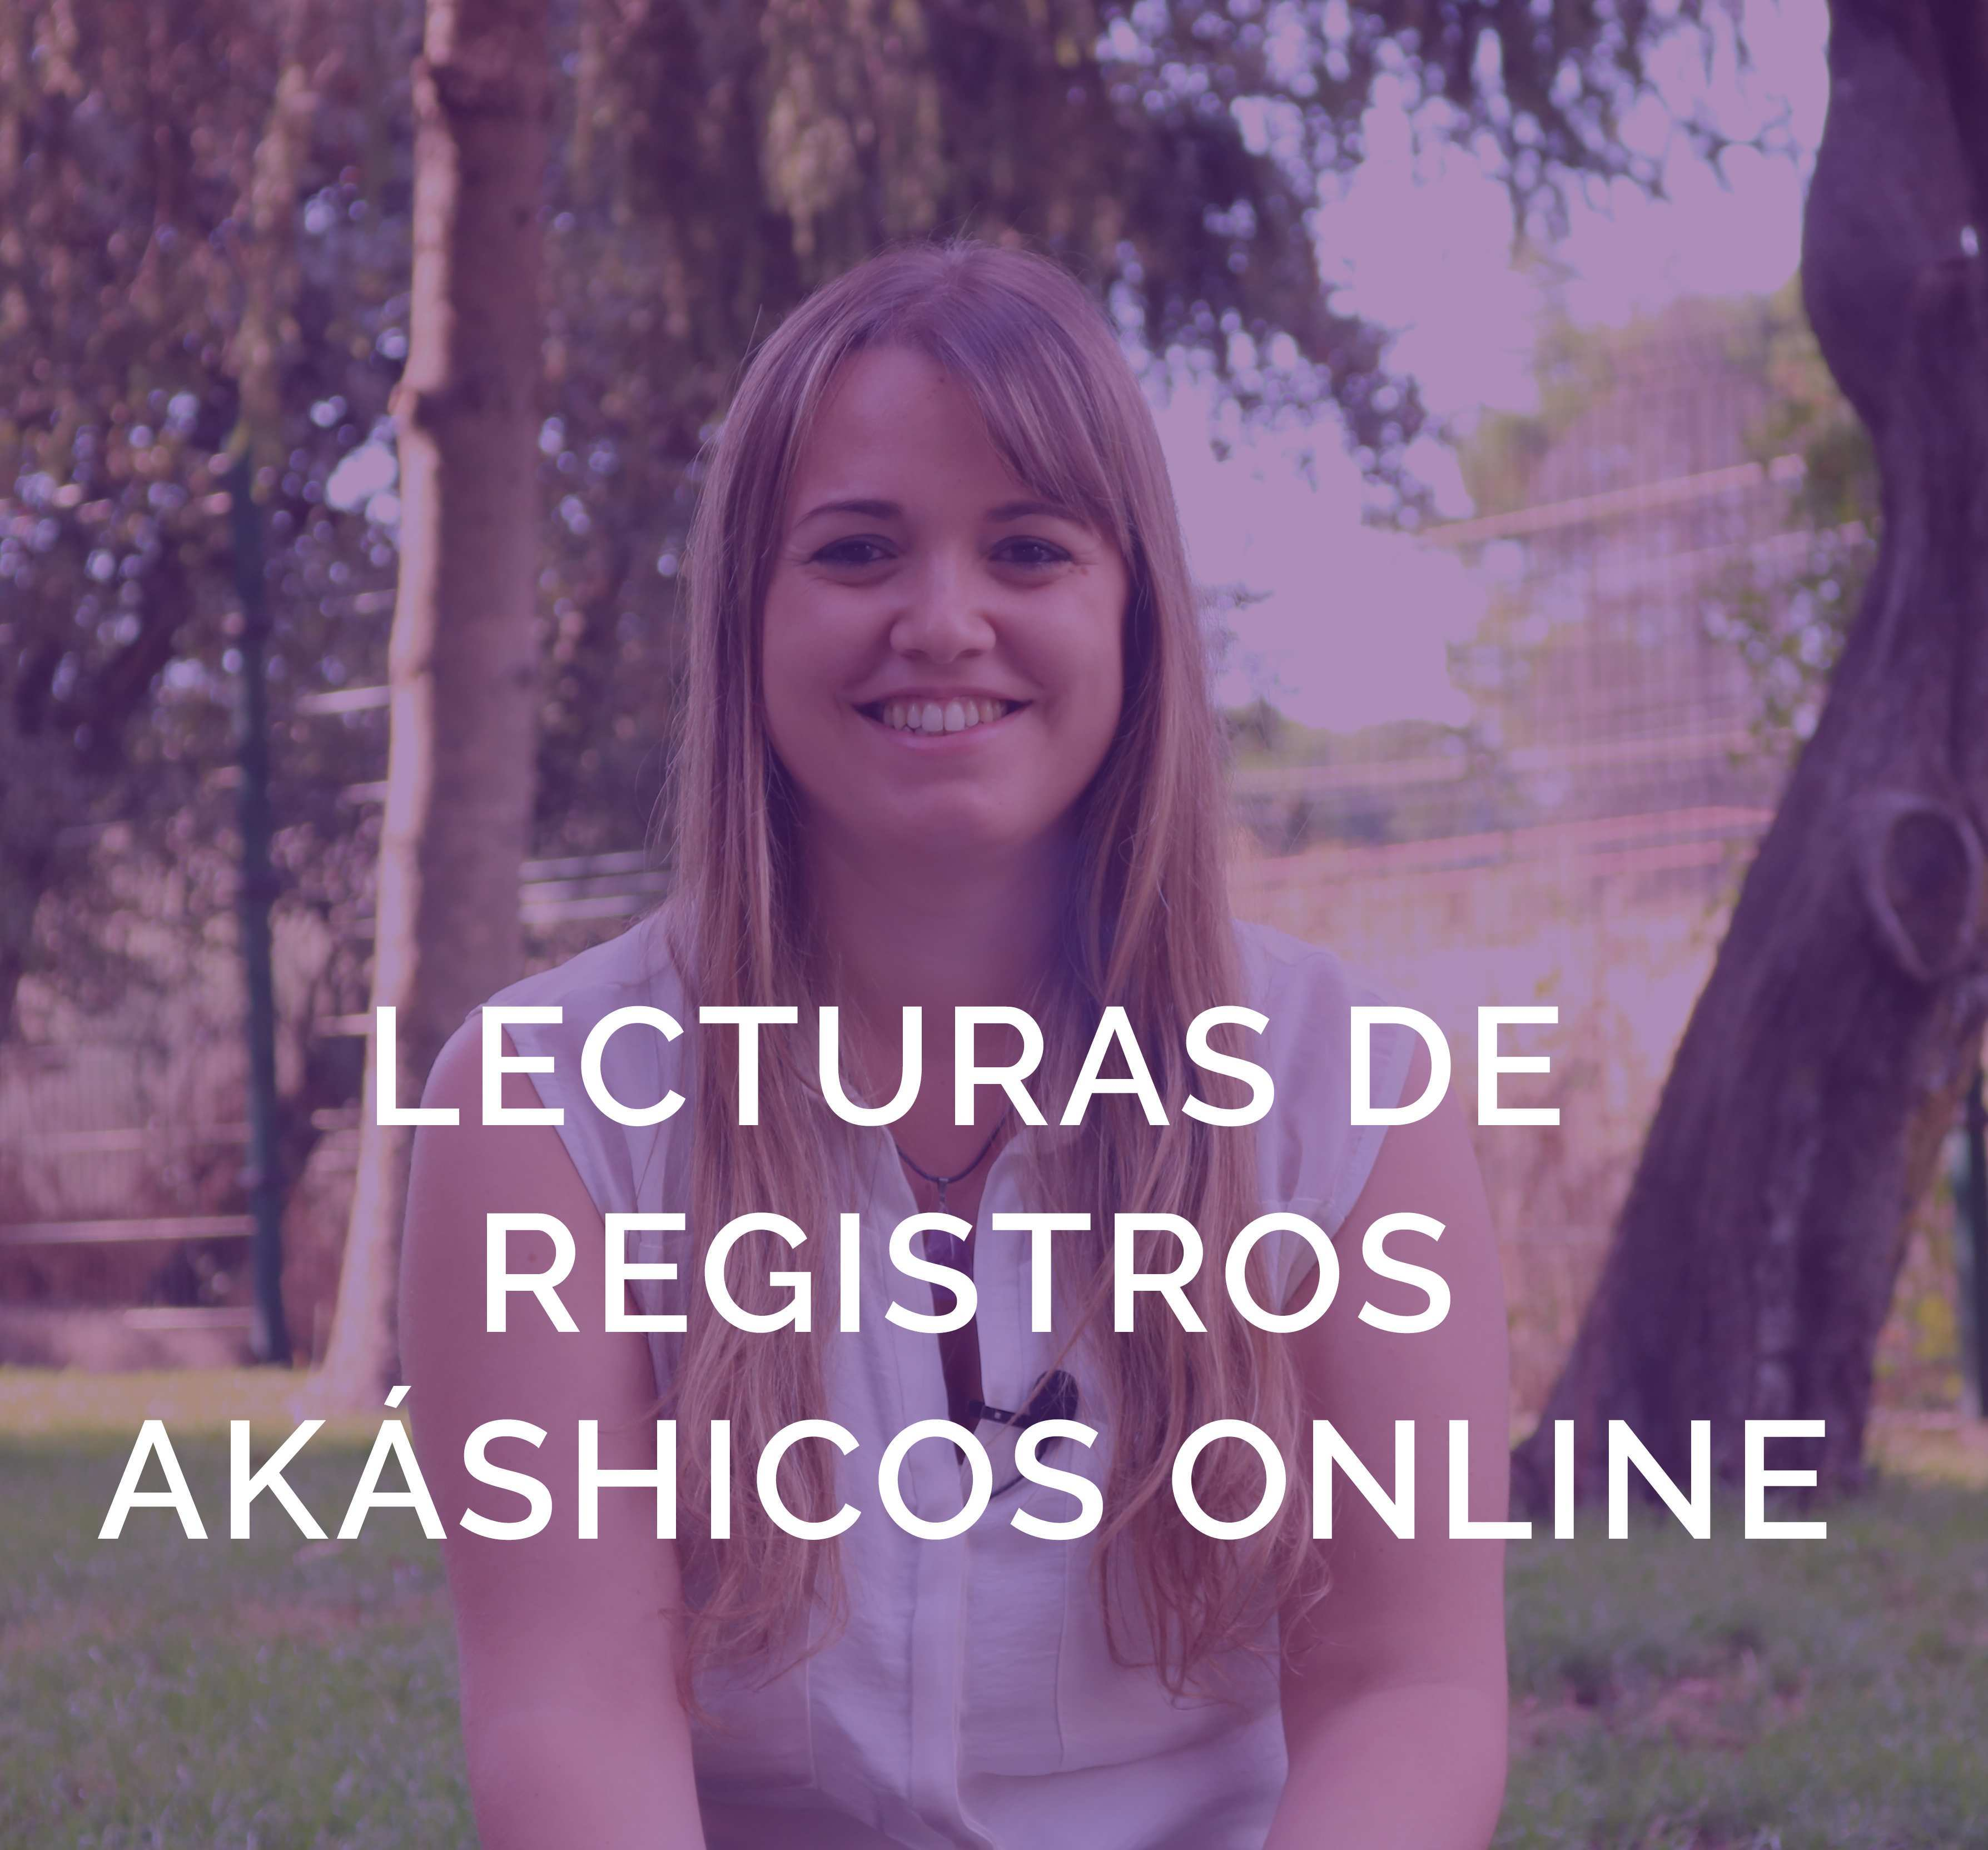 Lecturas Online akashicos